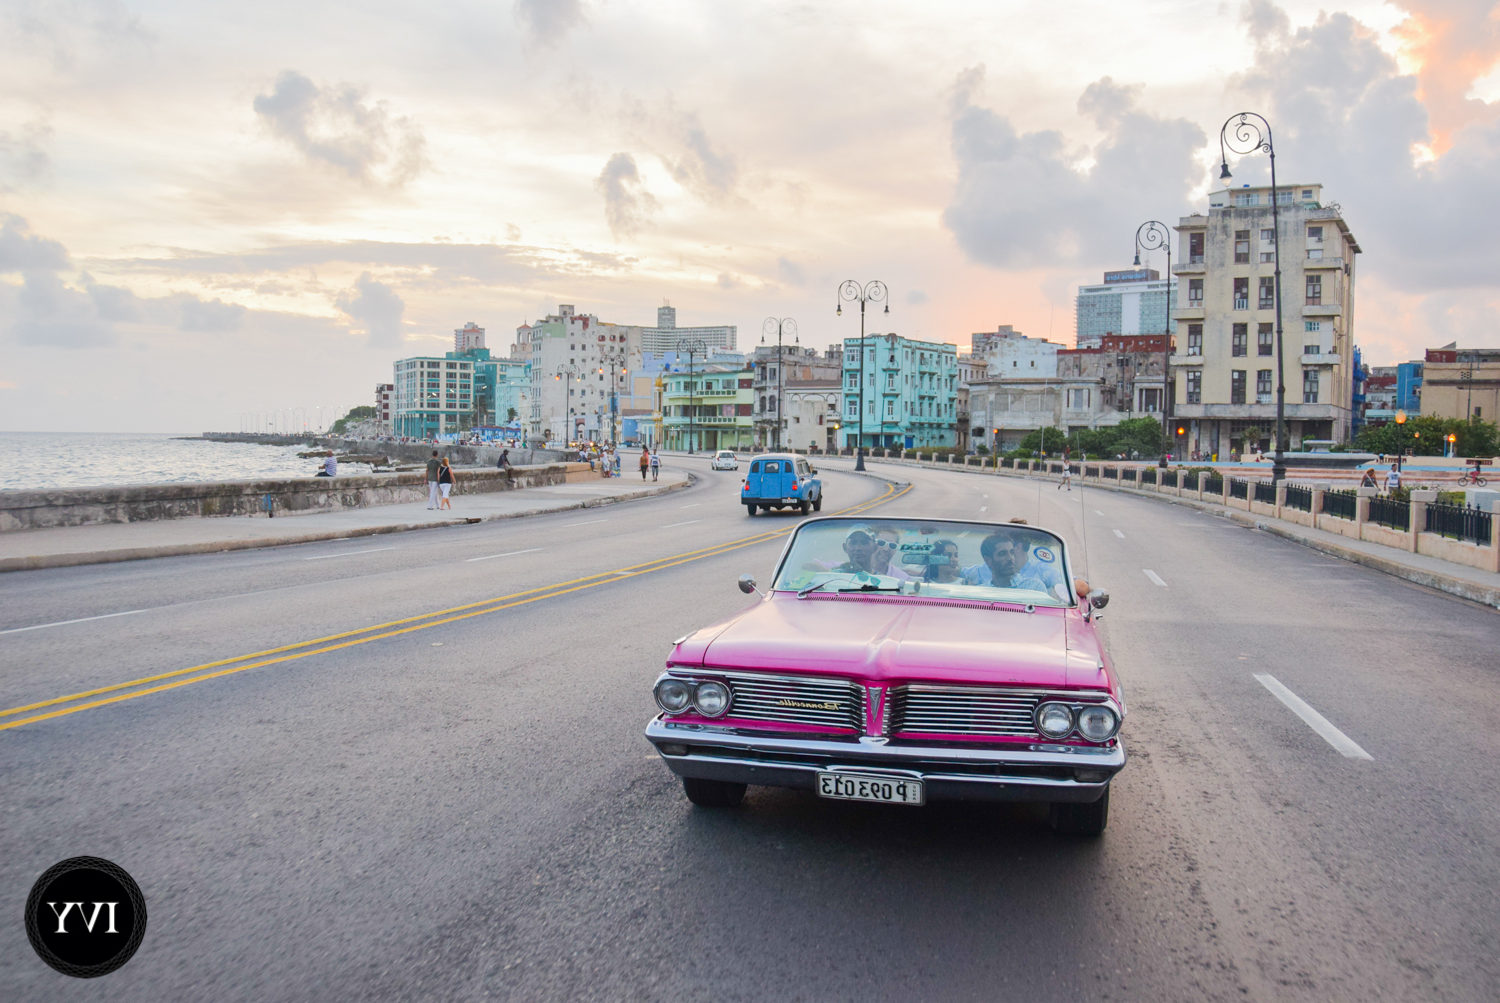 2017 Travel To Cuba See A Nation Suspended In Time Travel To Cuba With Ivy